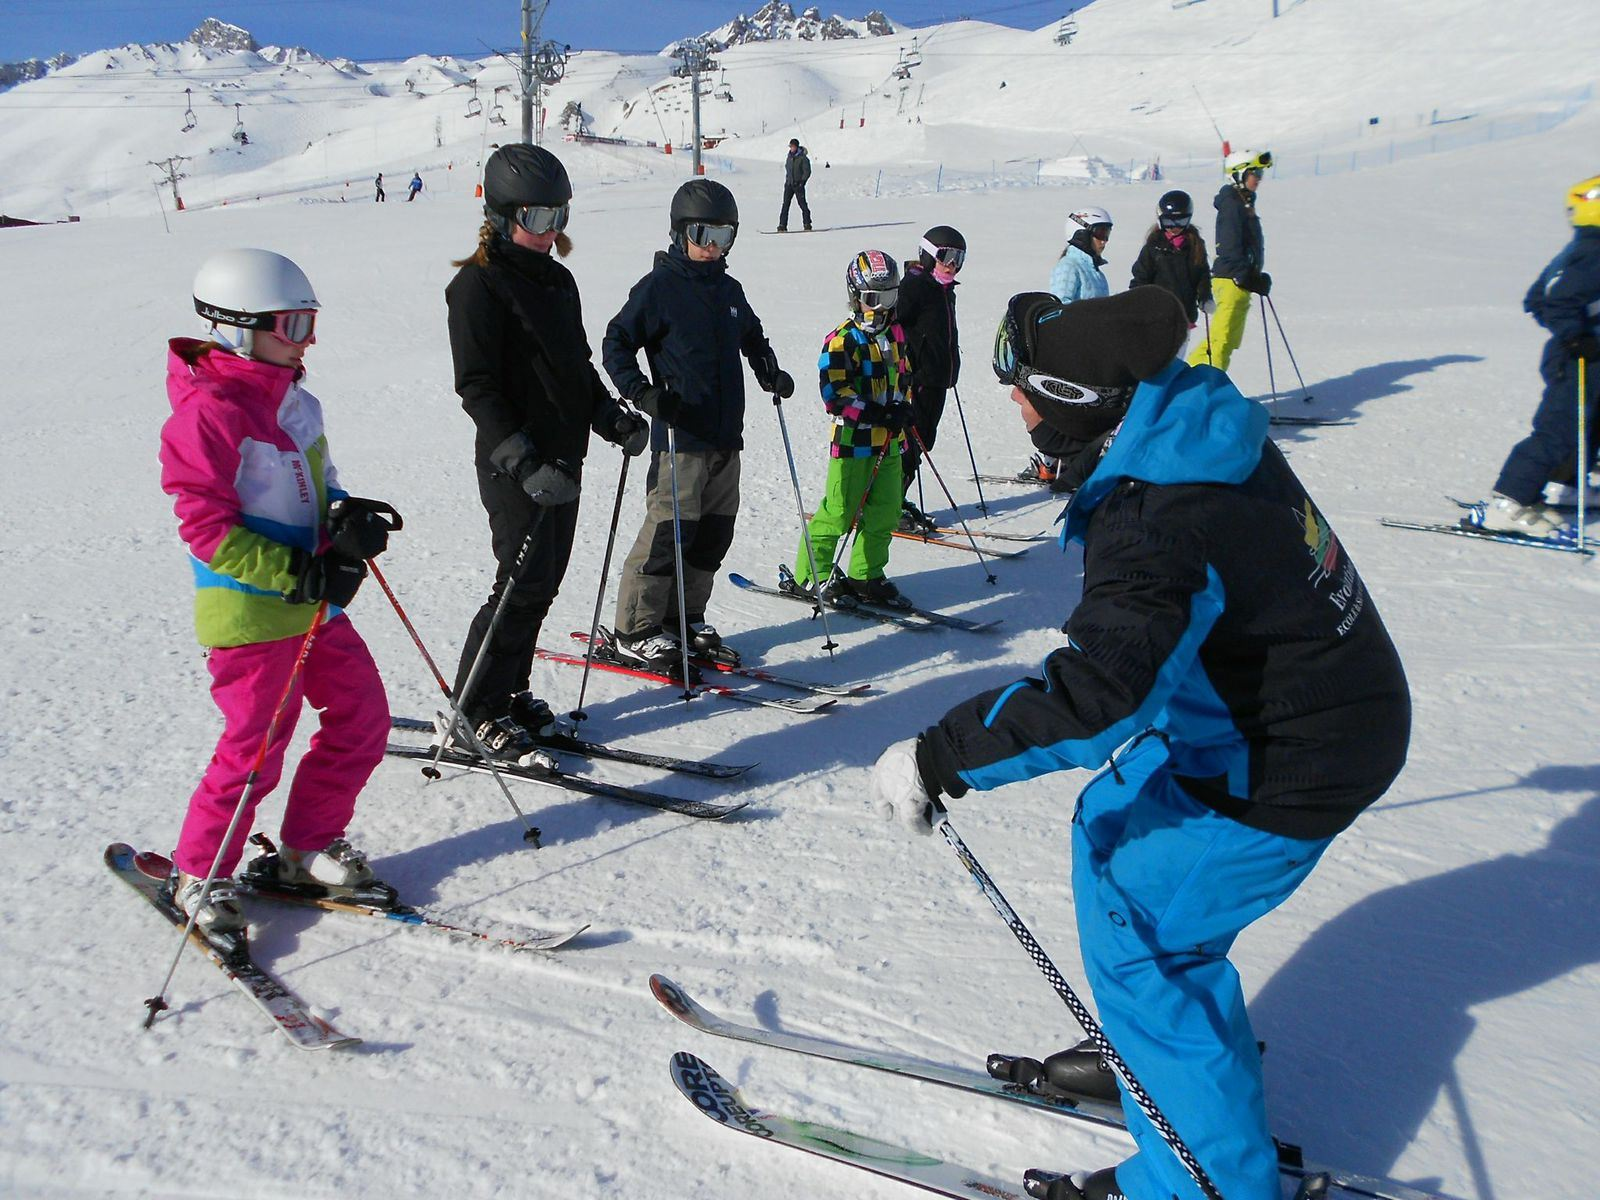 Afternoon ski lessons for kids and adults- Ski school Evolution 2